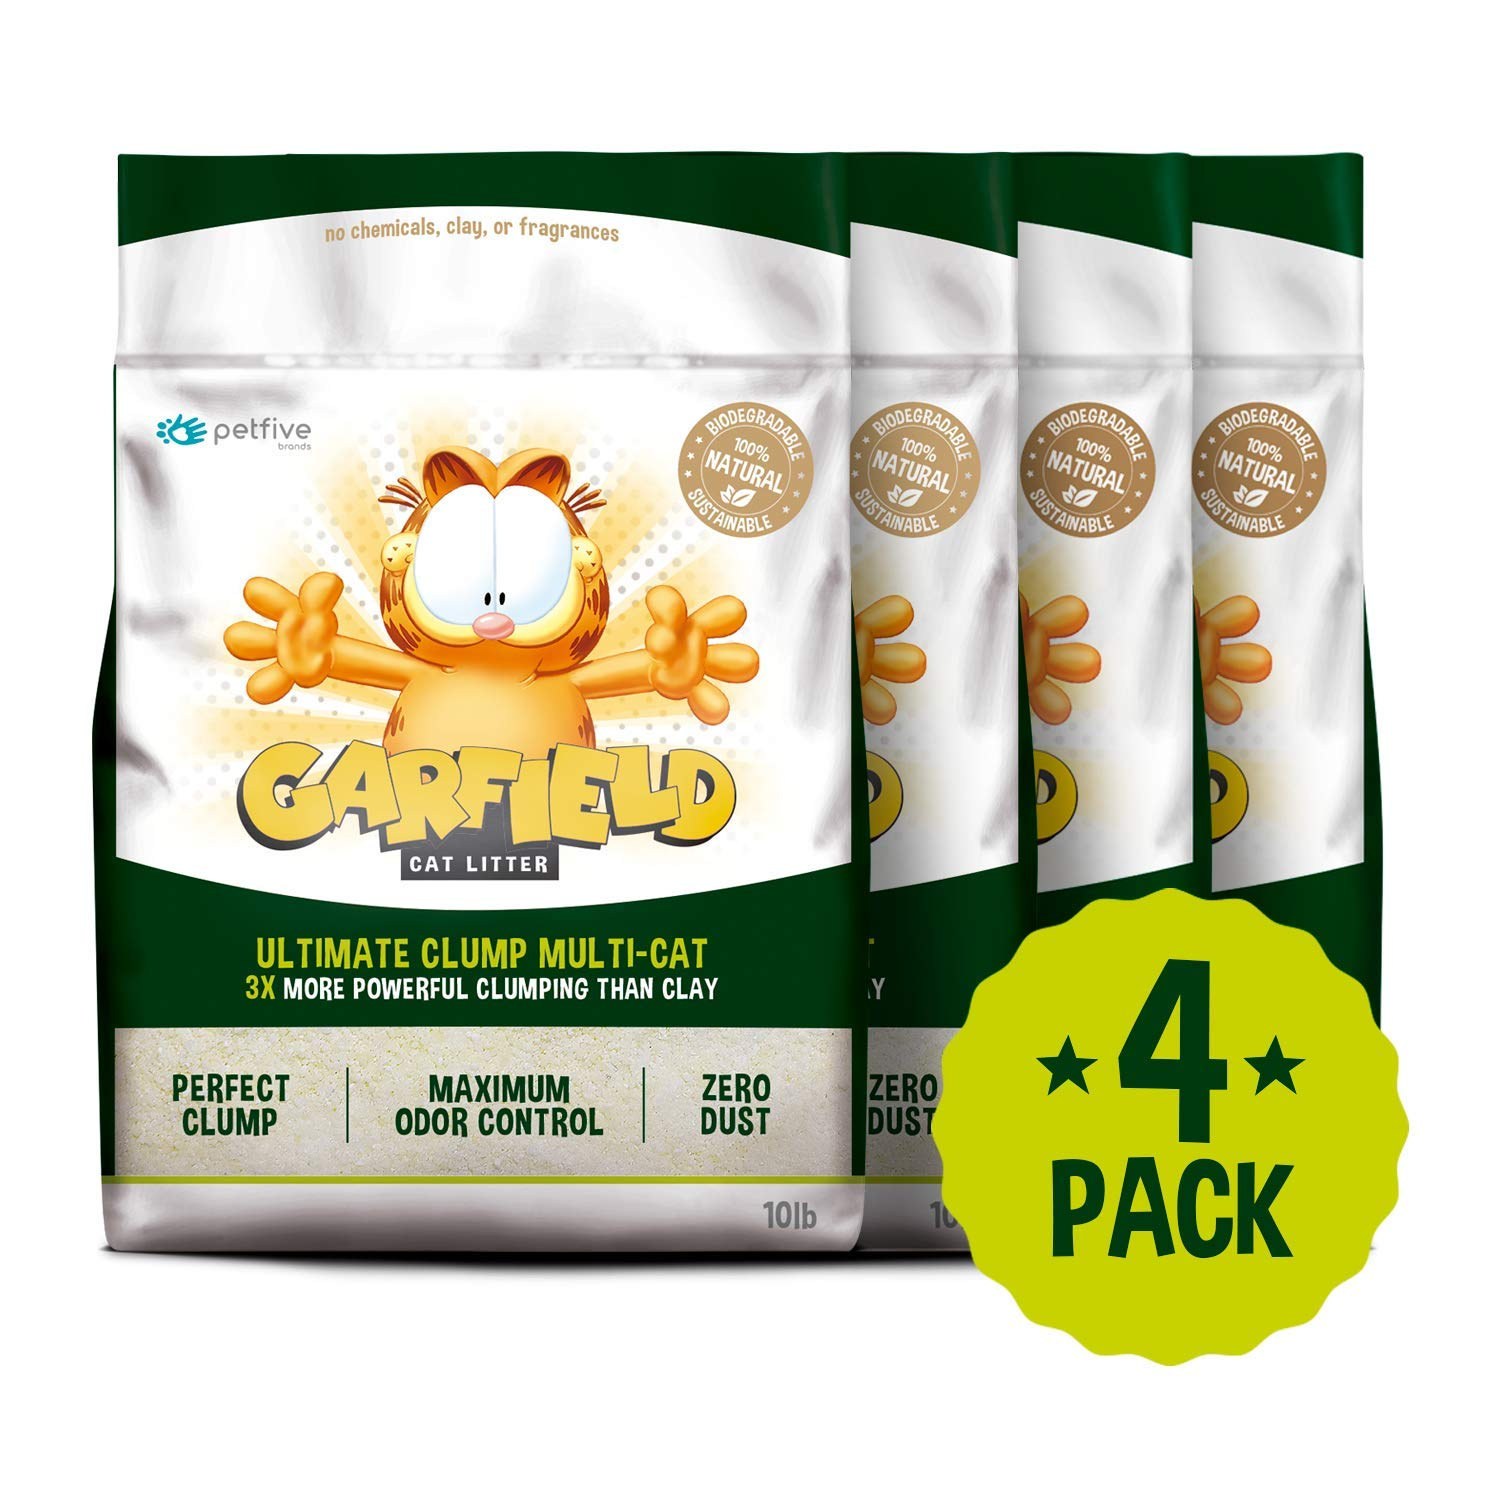 Garfield Cat Litter All Natural, Fast Clumping, Perfect for Multi-Cat Homes, Tiny Grains, 40 lb by Garfield Cat Litter